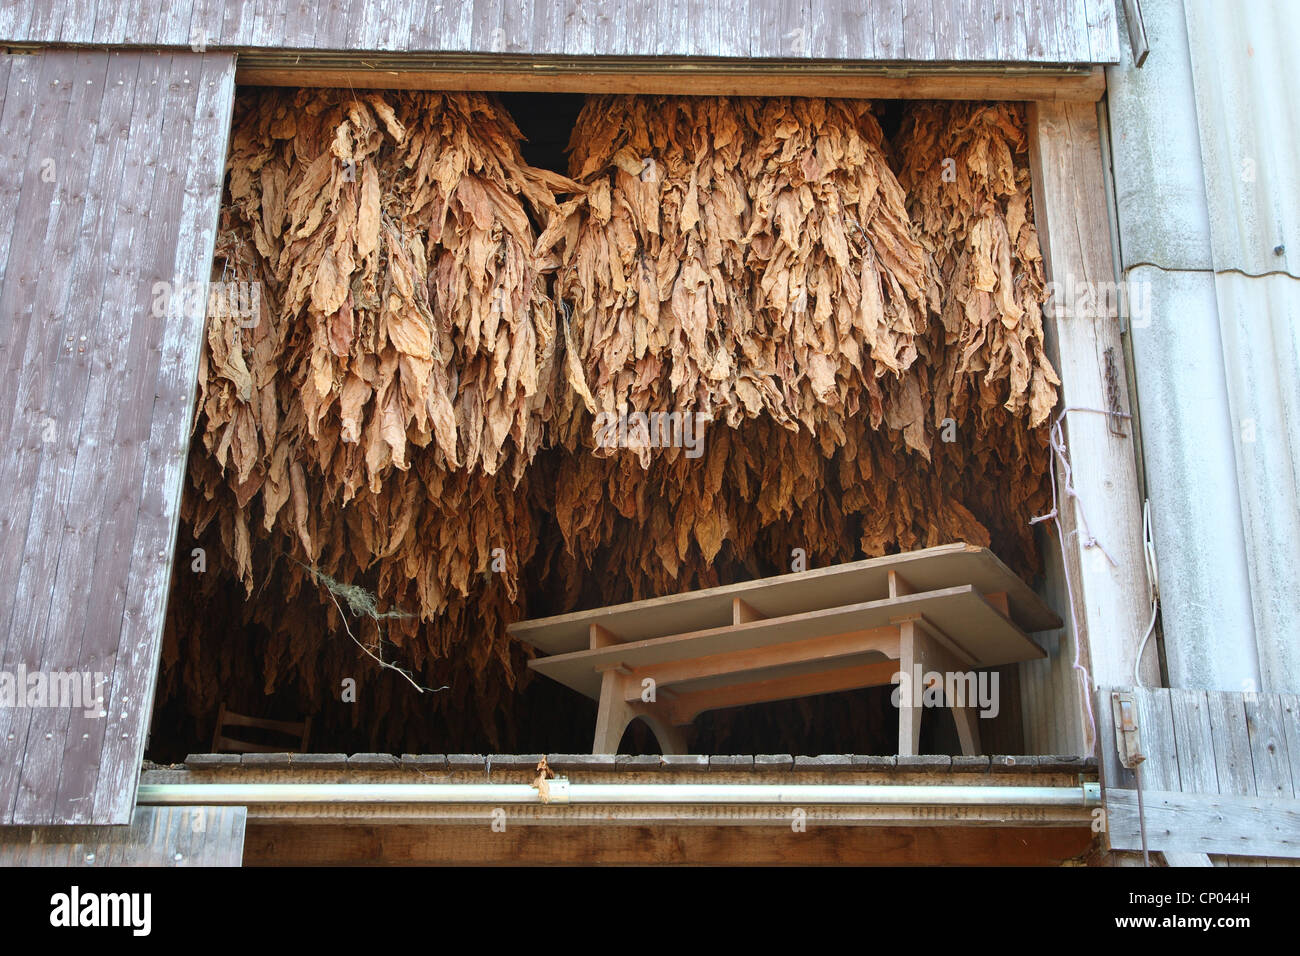 Cultivated Tobacco, Common Tobacco, Tobacco (Nicotiana tabacum), Tobacco leaves hung up for drying, Germany - Stock Image